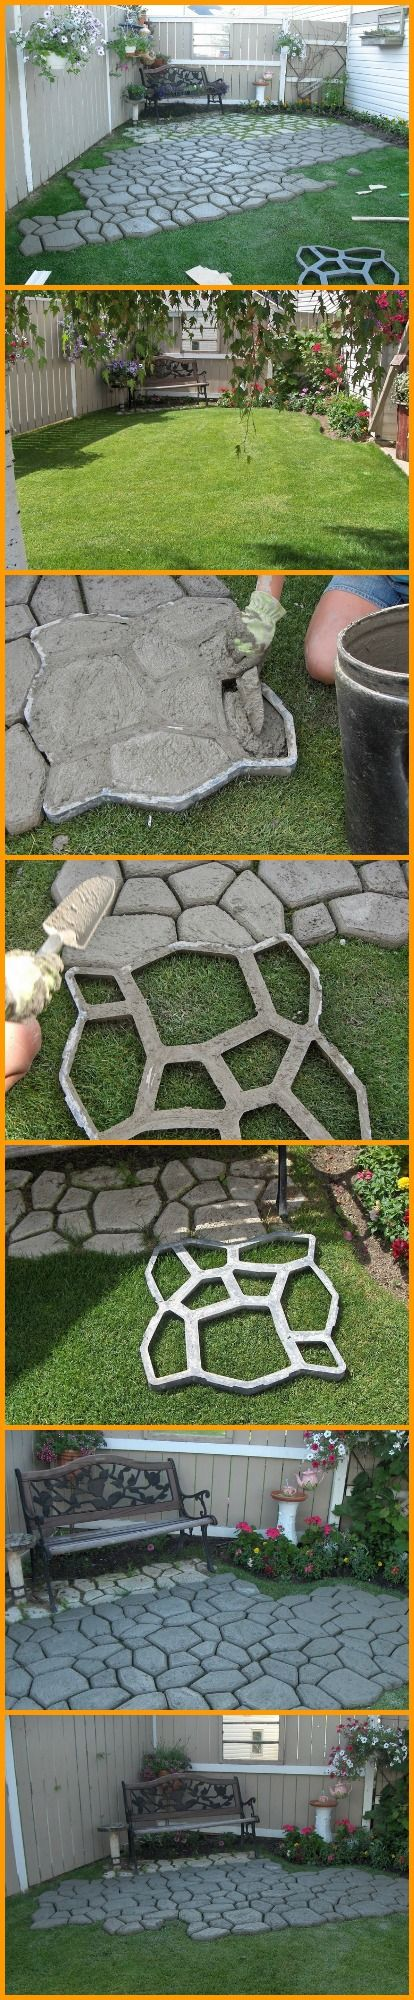 A concrete stencil can do magic for your backyard! This DIY paved patio is a great example. http://theownerbuildernetwork.co/j7da